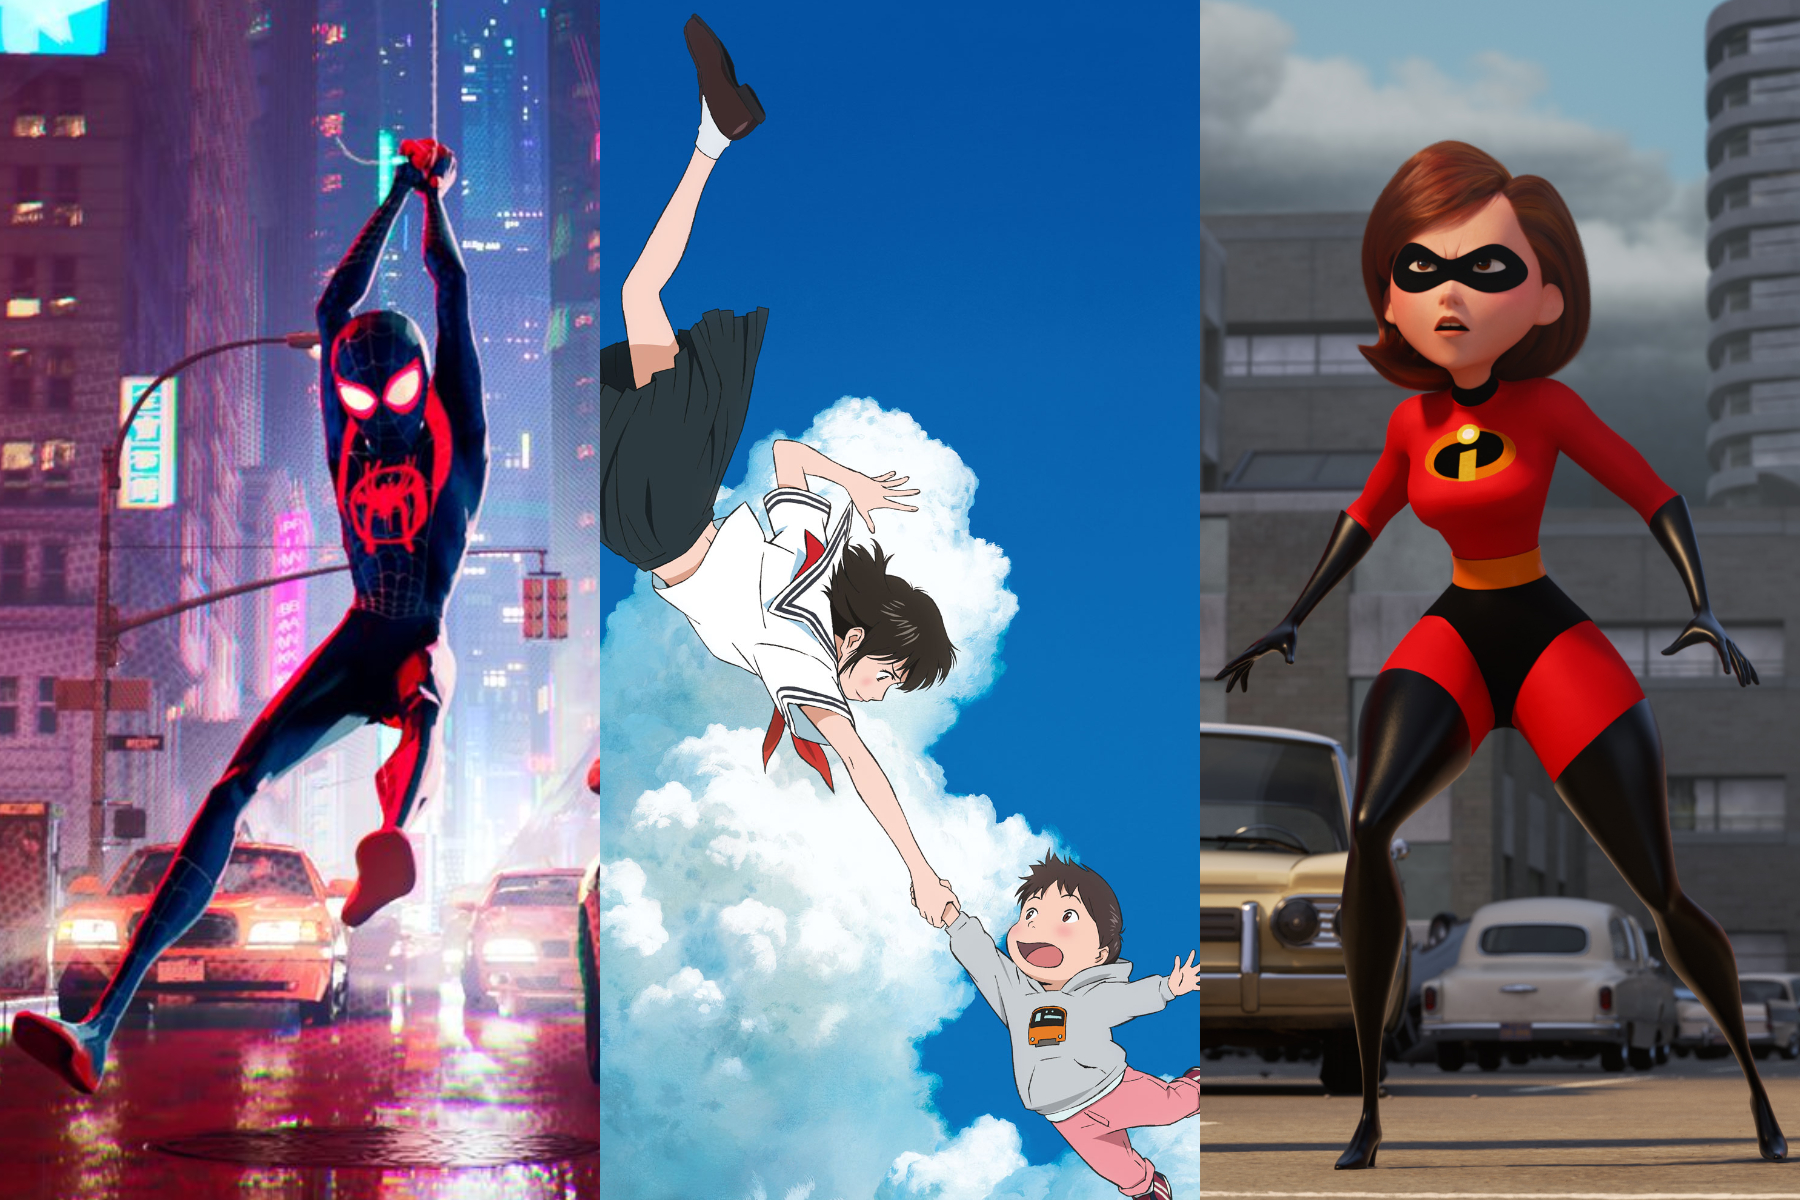 All 5 nominees for the Animated Feature Oscar are worth seeing. One stands above the rest.